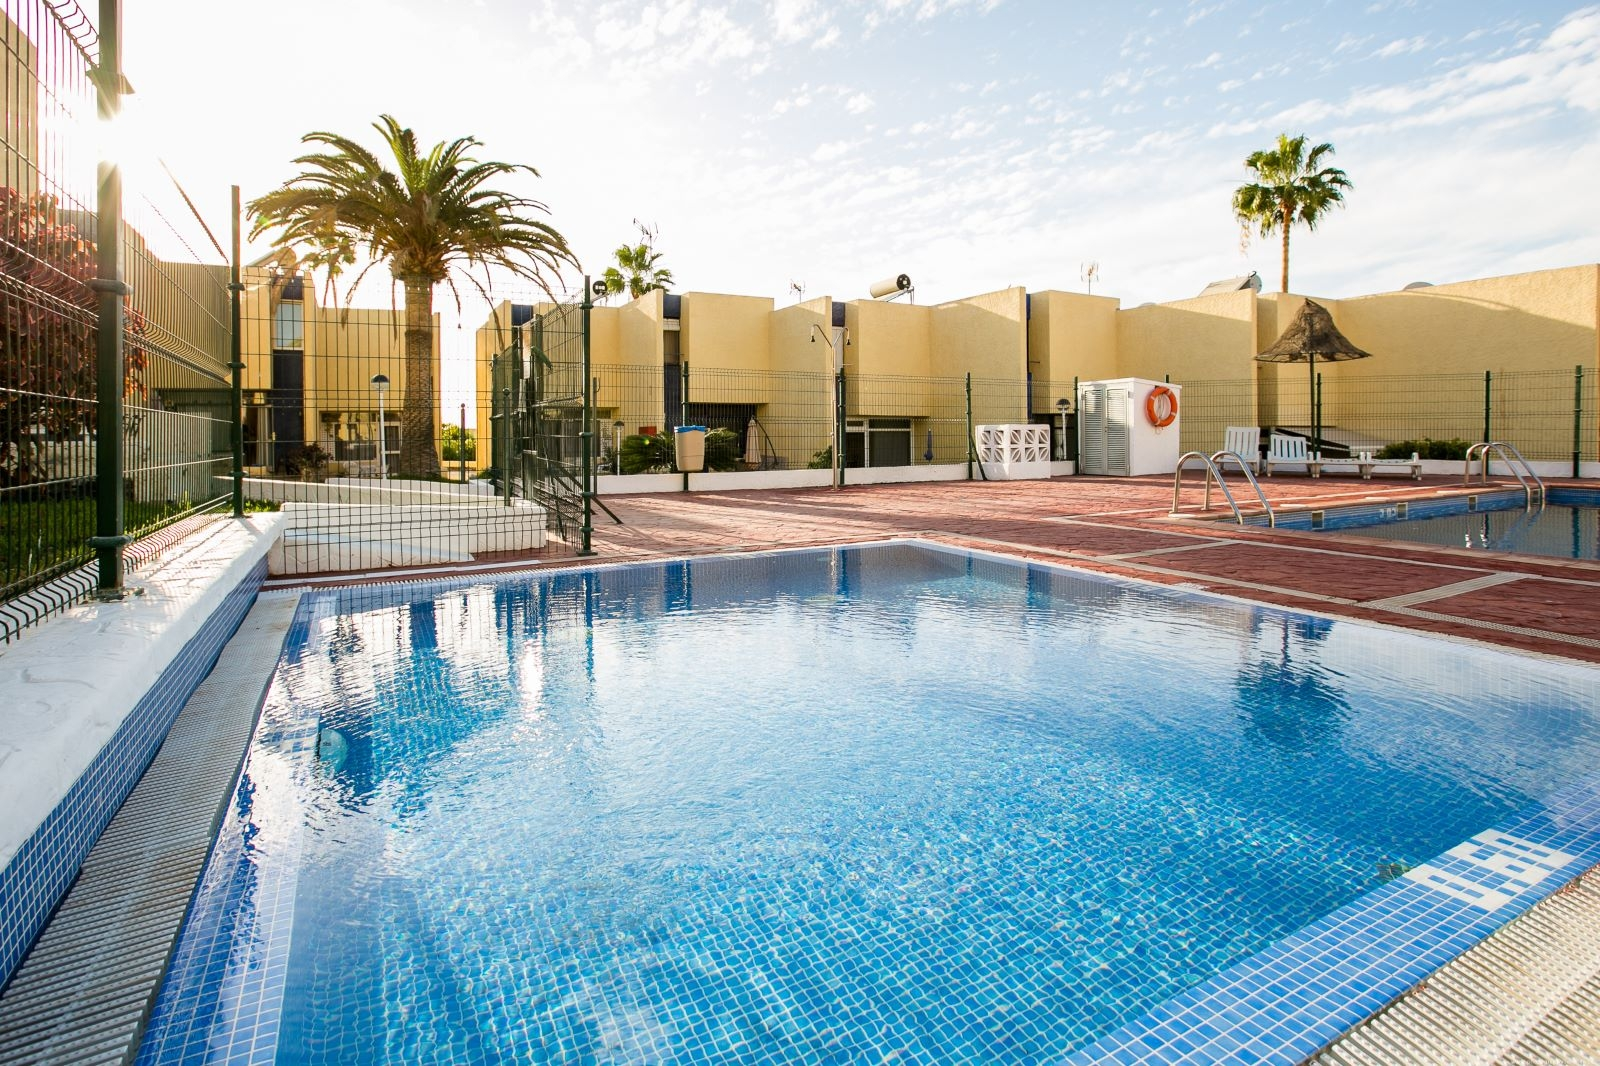 Properties for Sale in Tenerife, Canary Islands, Spain | SylkWayStar Real Estate. 1 bedroom apartment El Cortijo, Las Americas. Image-22484